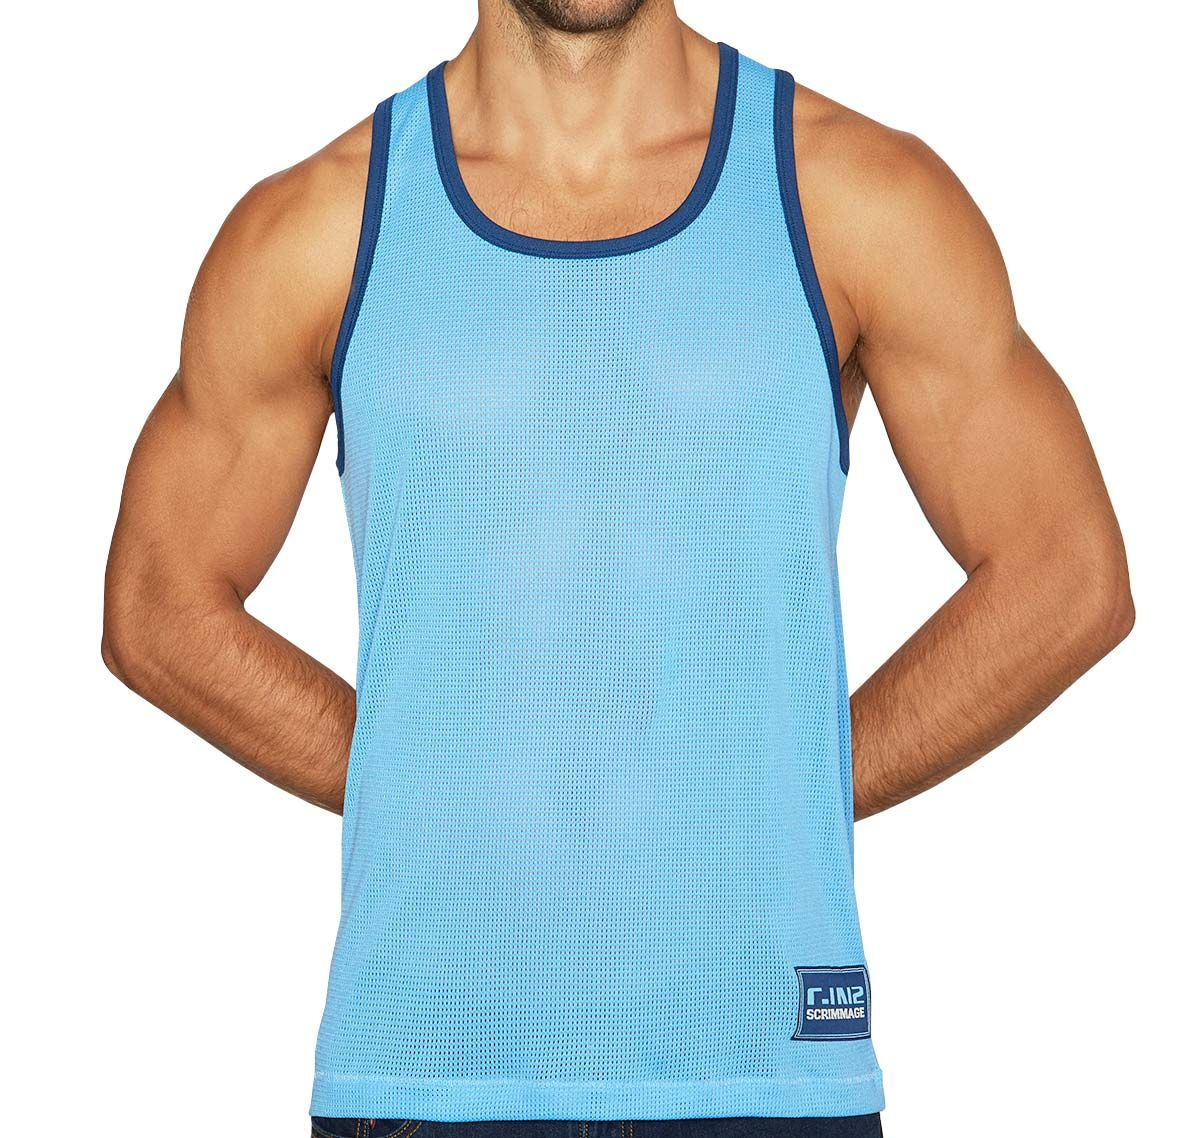 C-IN2 Canotta SCRIMMAGE RELAXED TANK 6806-412A, blu